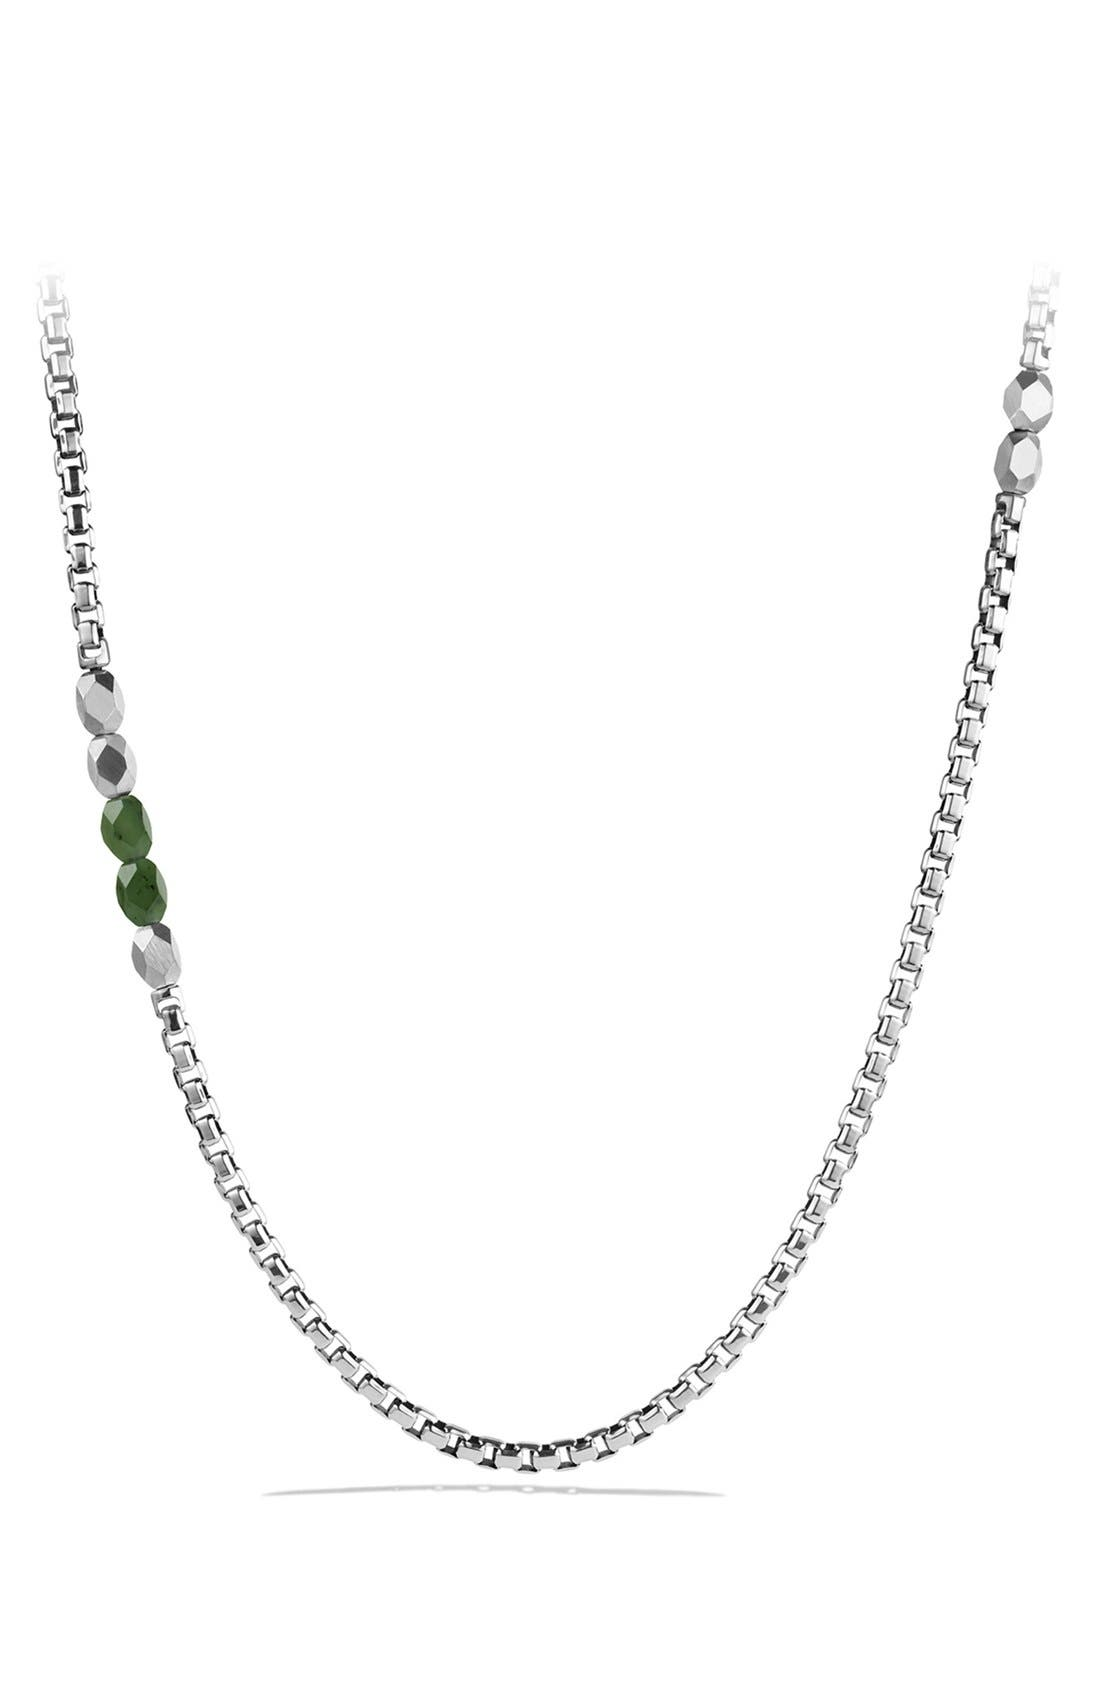 'Faceted' Metal Necklace,                             Main thumbnail 1, color,                             Jade